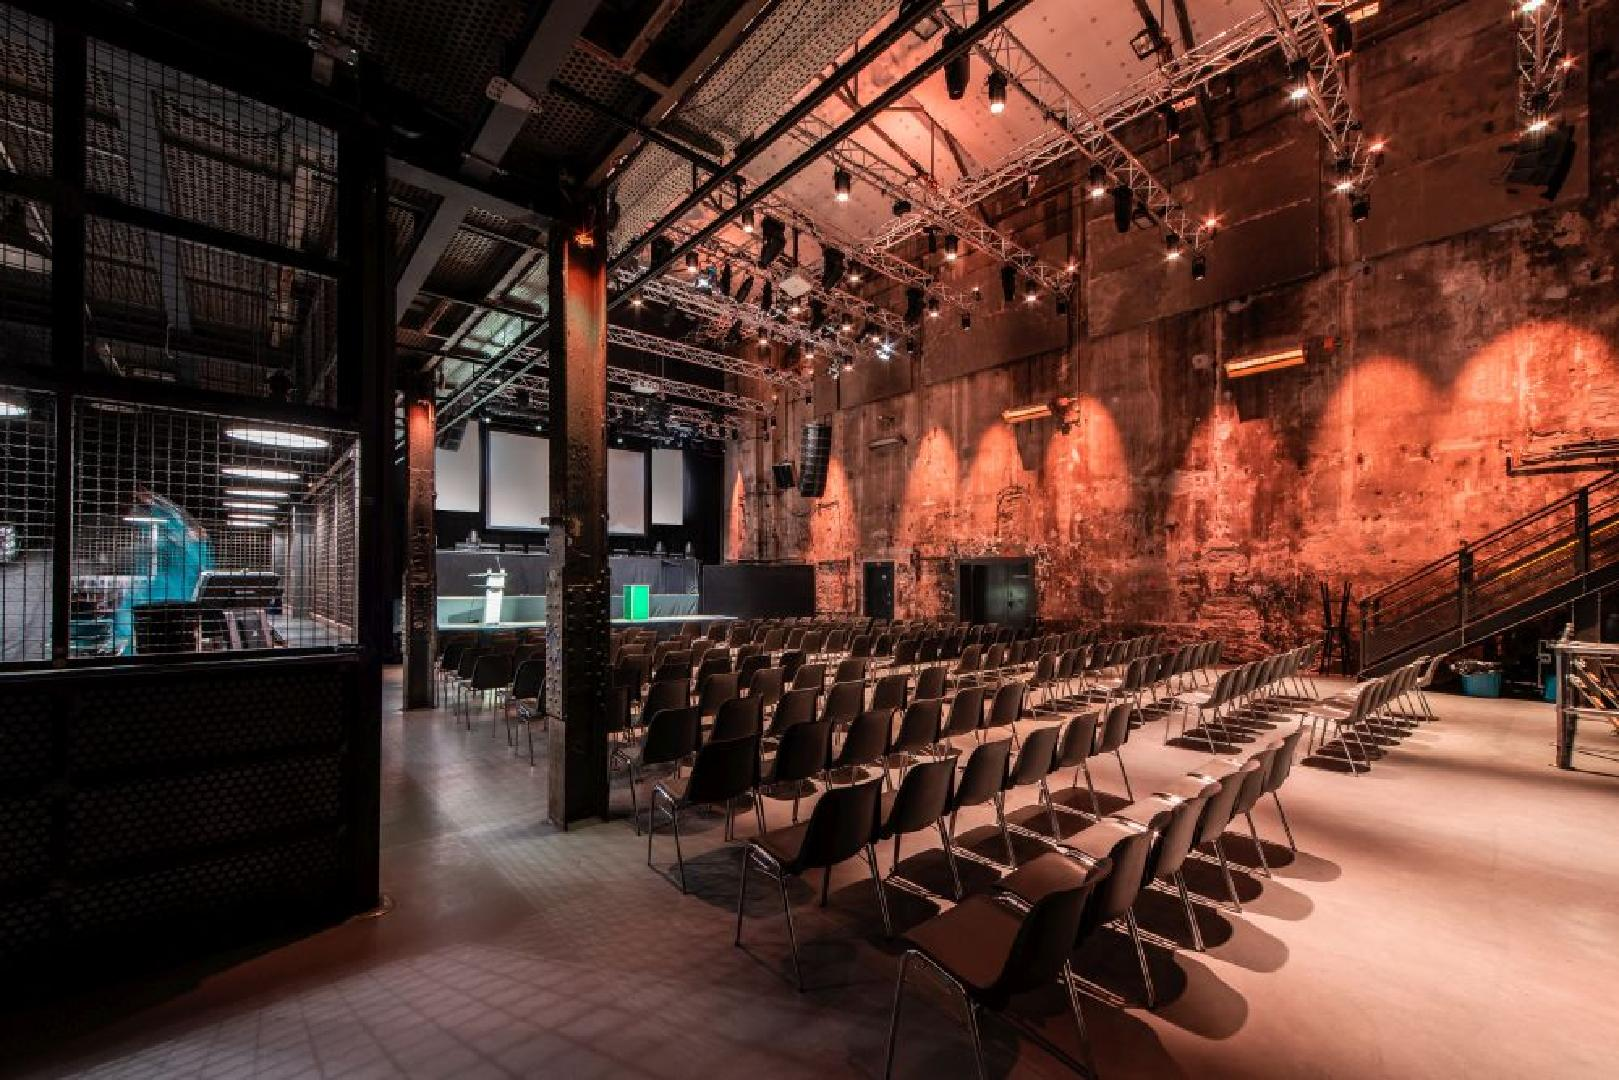 Picture 2 of Conferences at the Kulturbrauerei